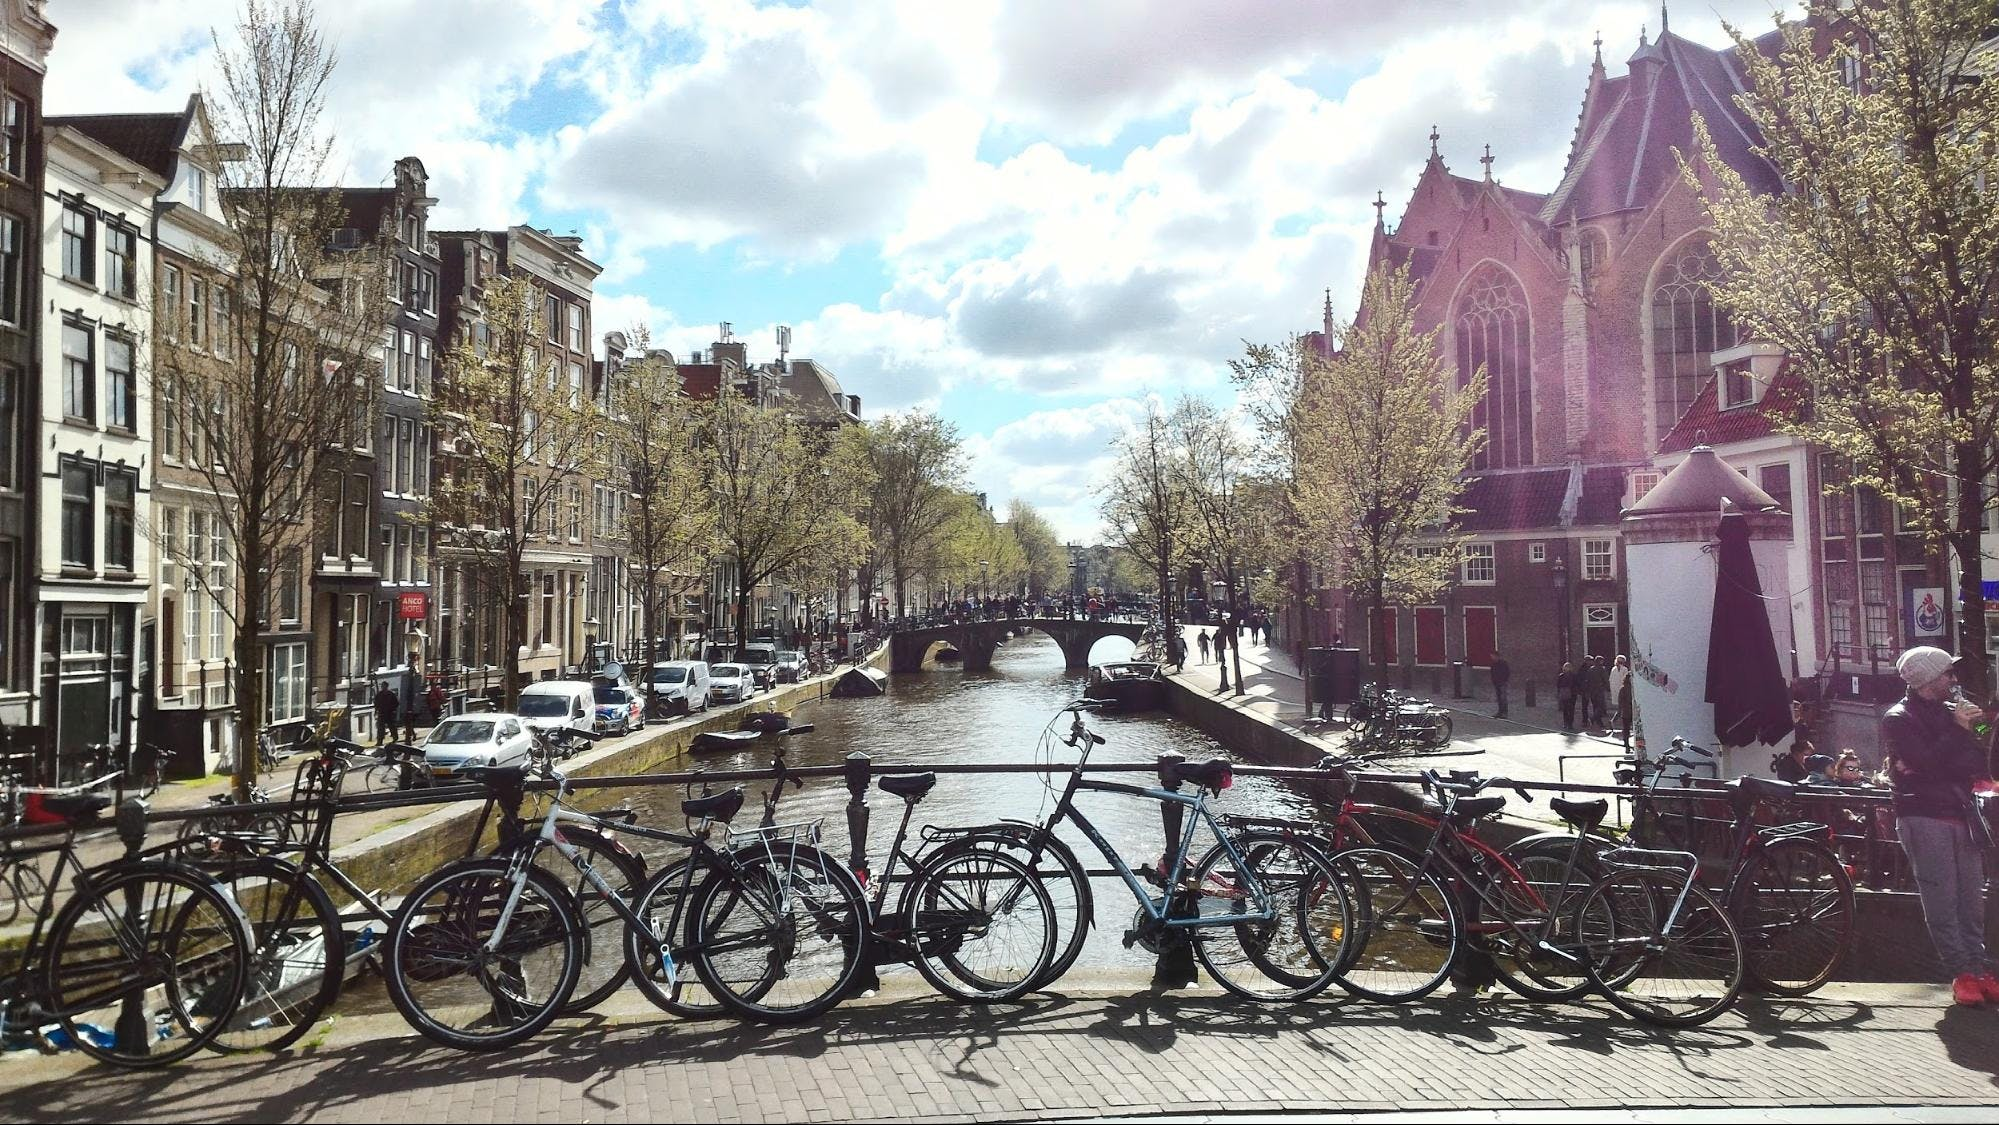 Bikes on bridge over canal in Amsterdam